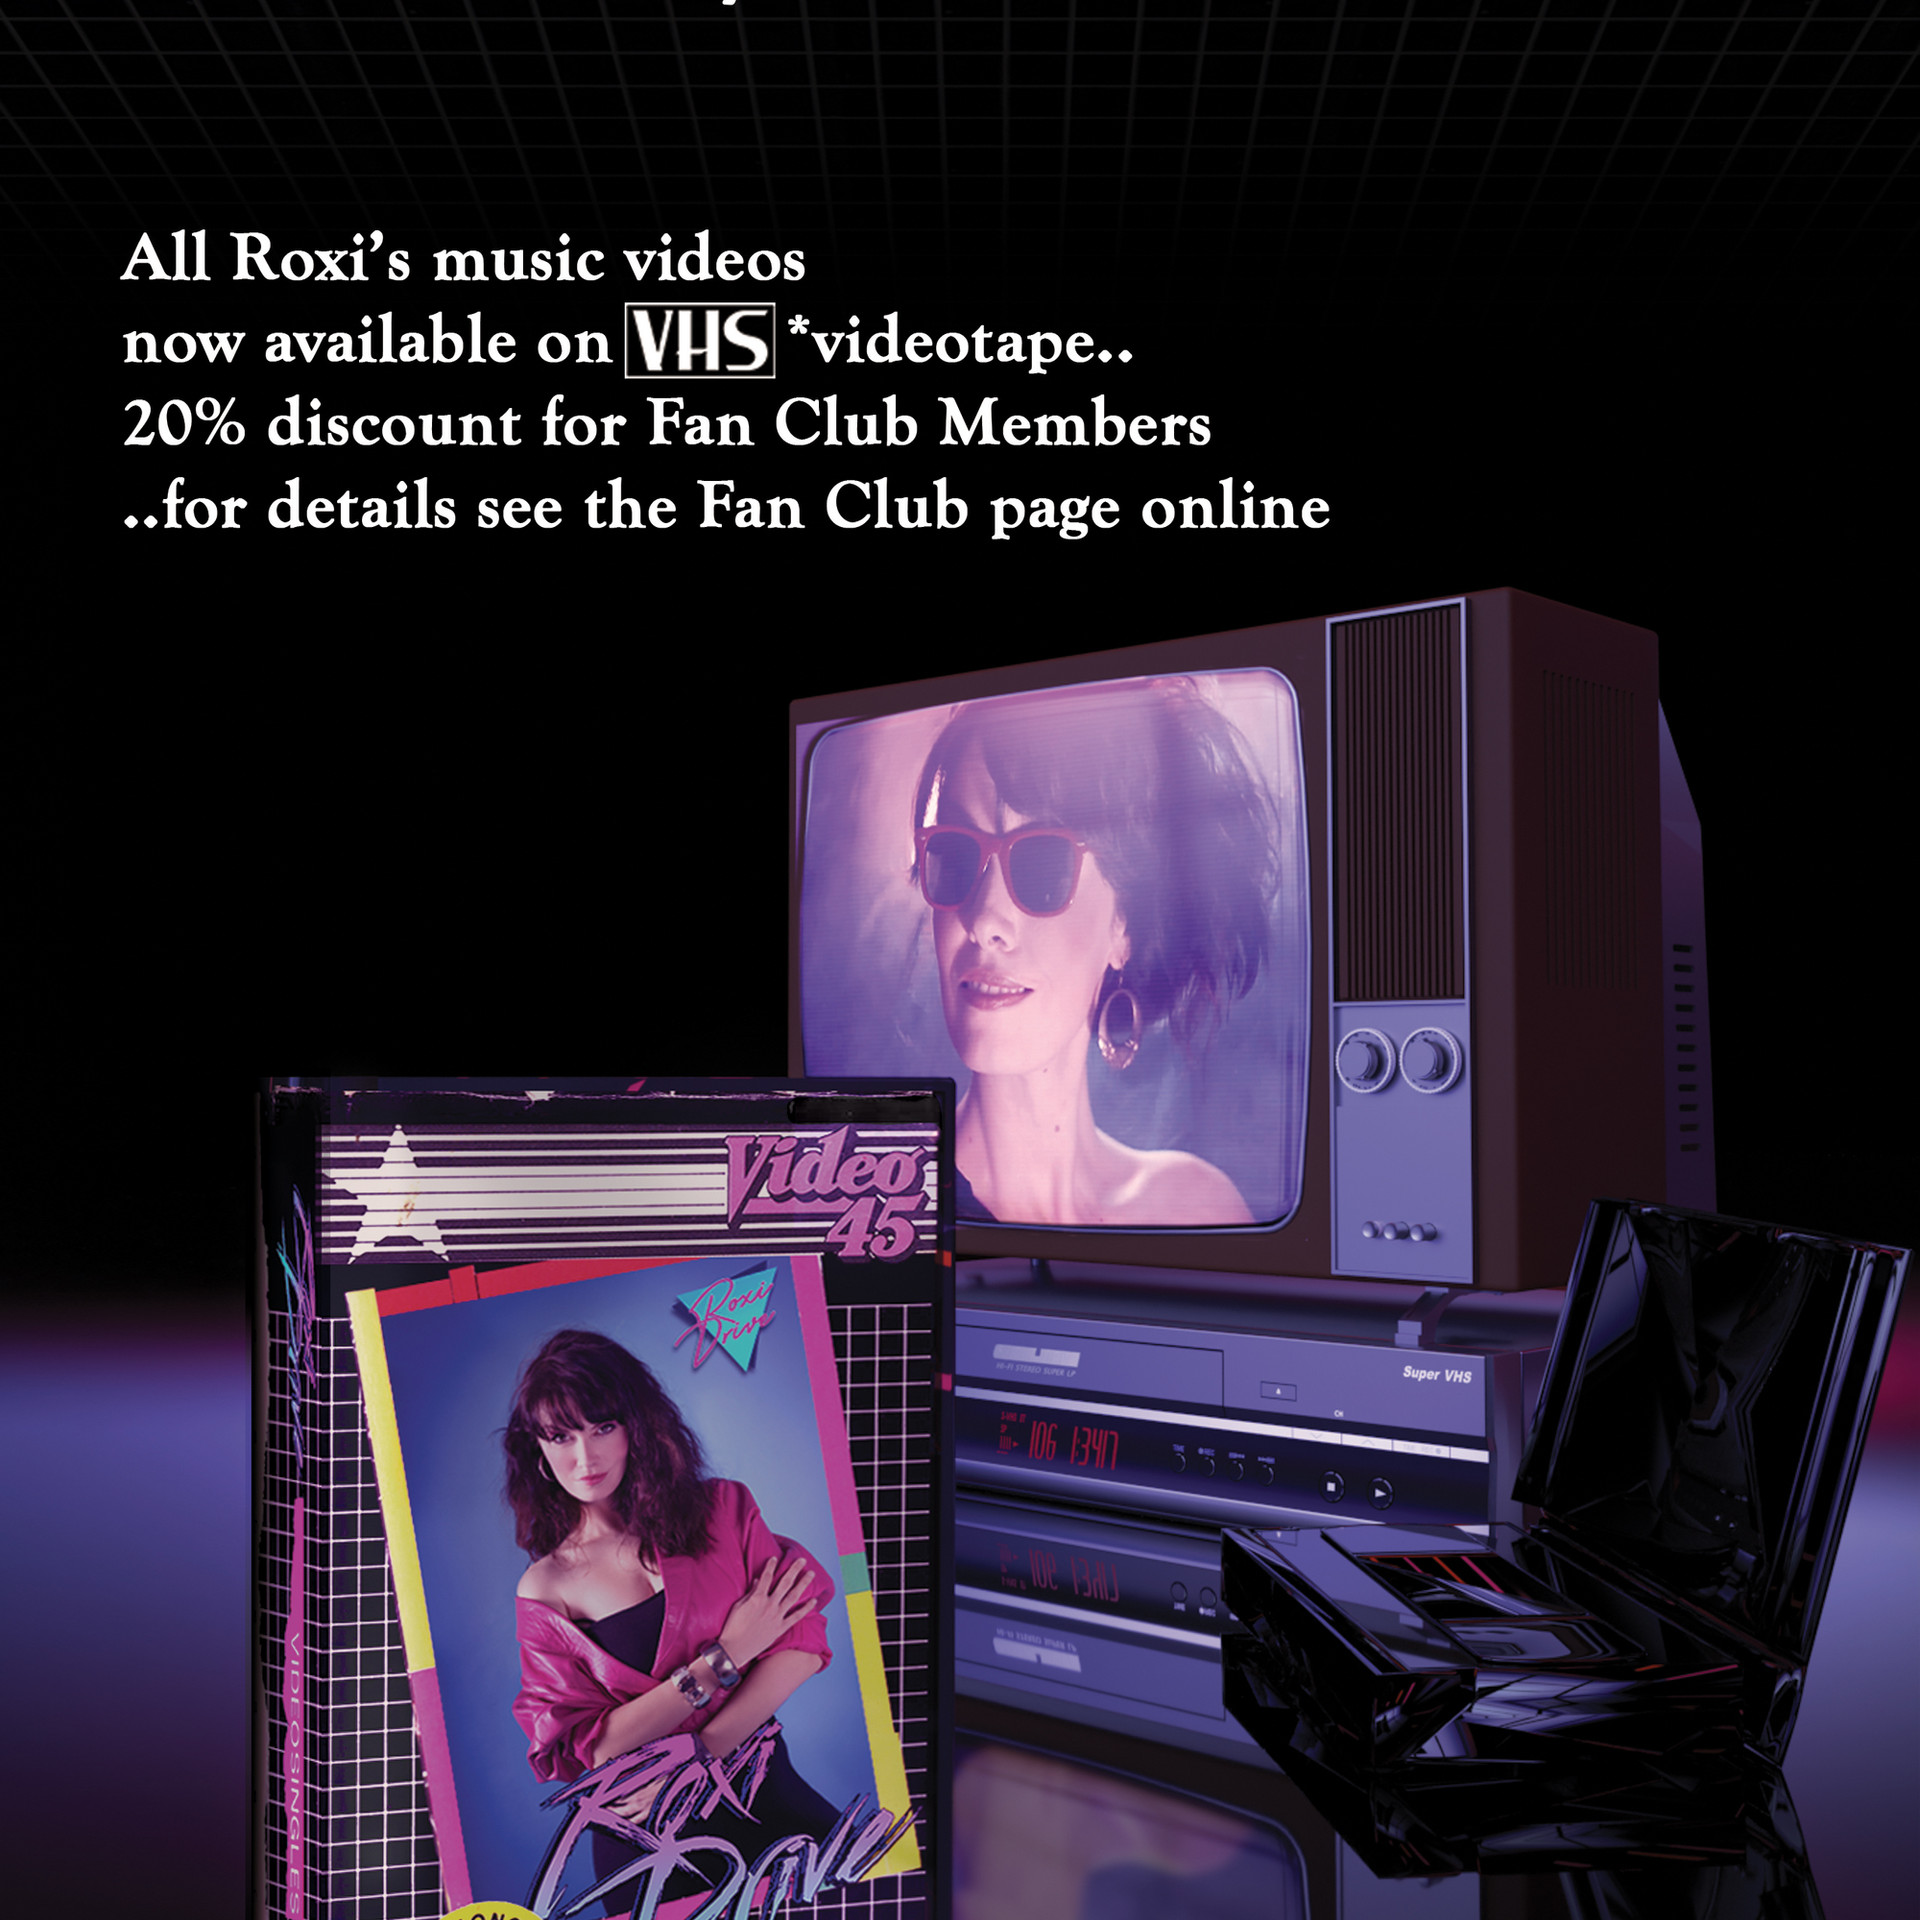 Featured in the Fan Club magazine above. An 80s style advert made with CGI elements modelled in Blender and rendered using Adobe Dimension